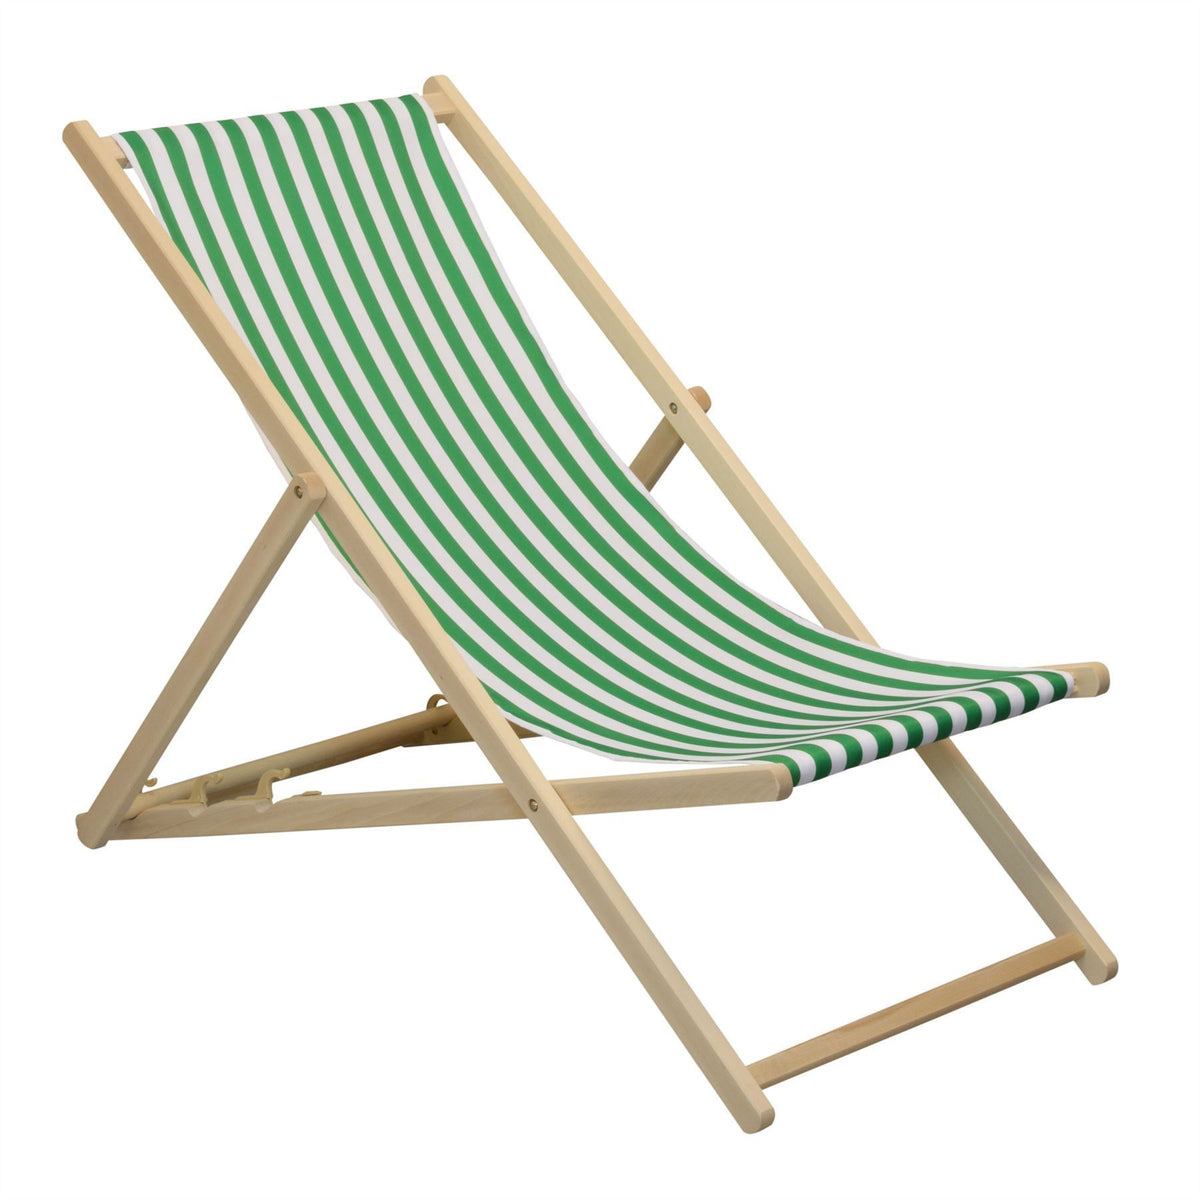 Traditional Garden Beach Style Adjustable Deck Chair Blue and White stripes Harbour Housewares Deck Chair